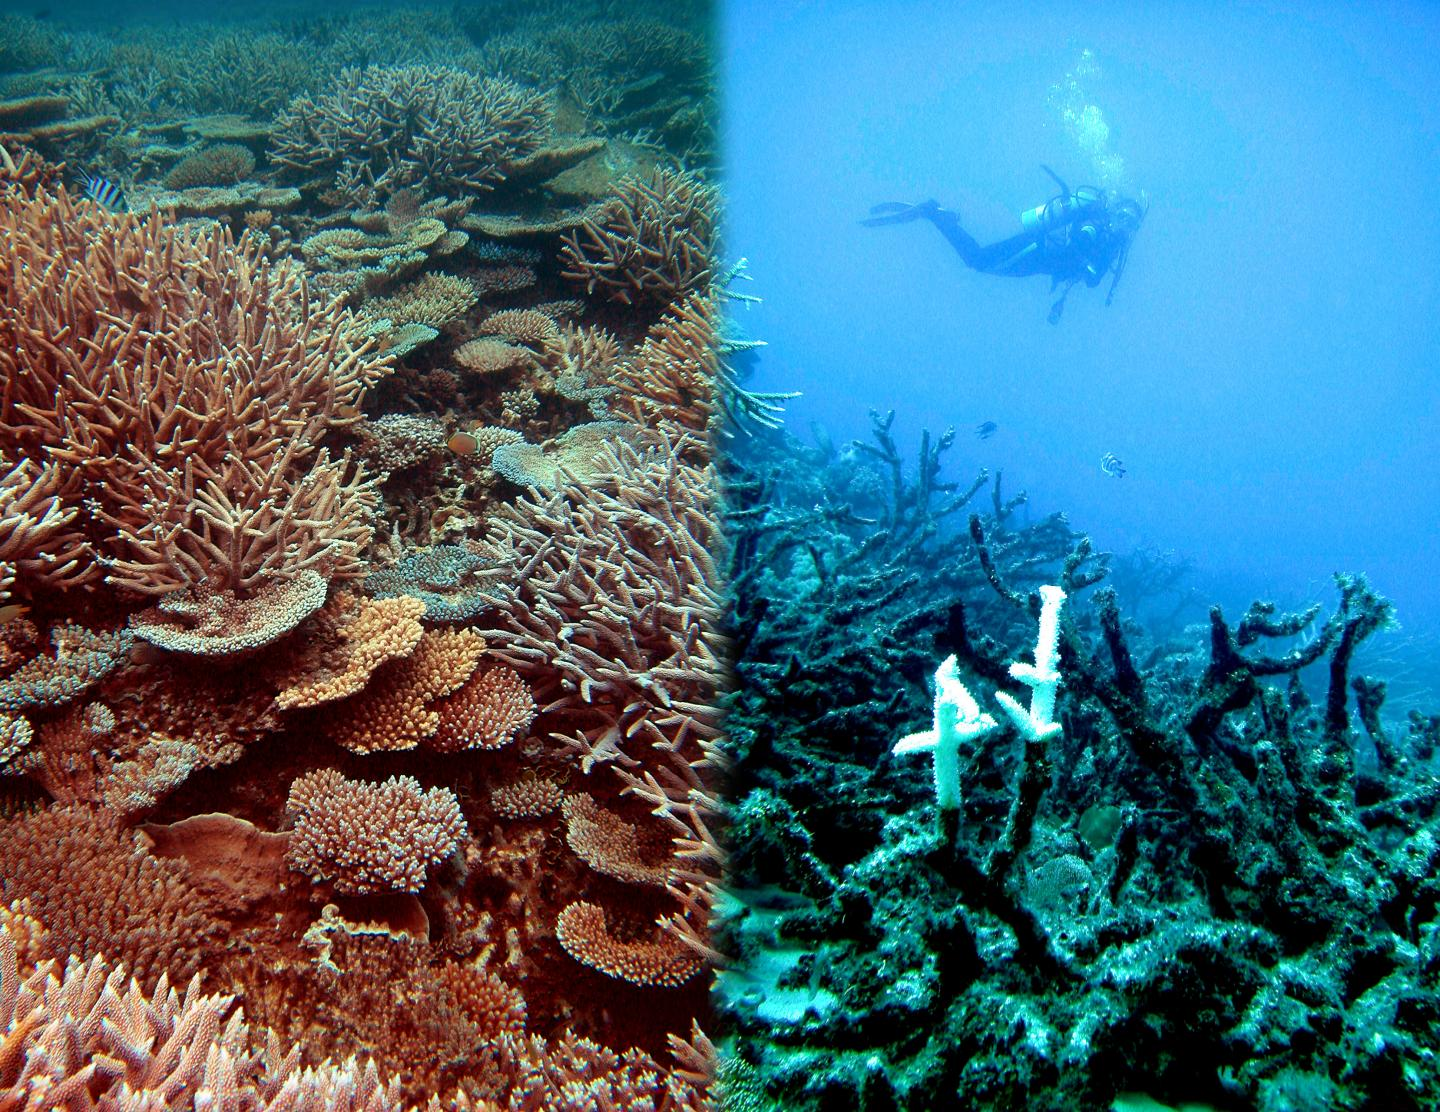 Coral Reefs Doomed Even if Climate Conference is Successful